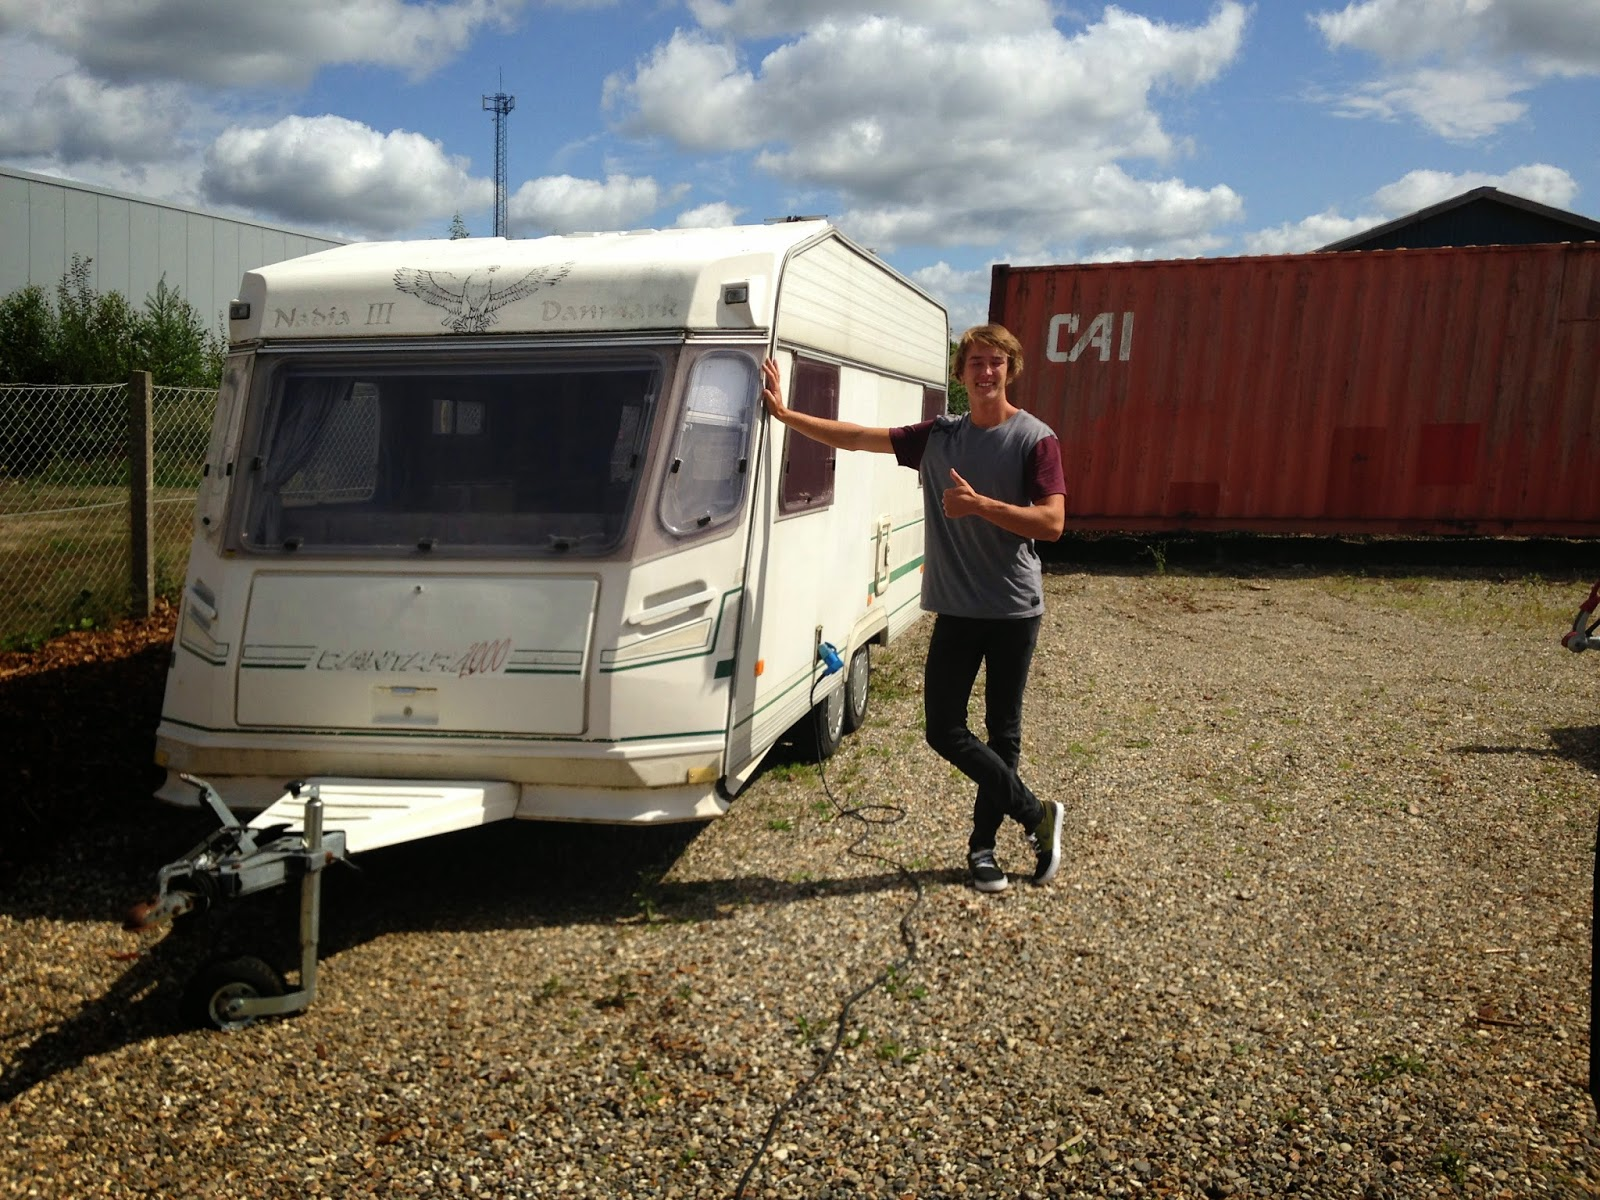 Frederik Leth with his Caravan. Ready for Meribel and Pila